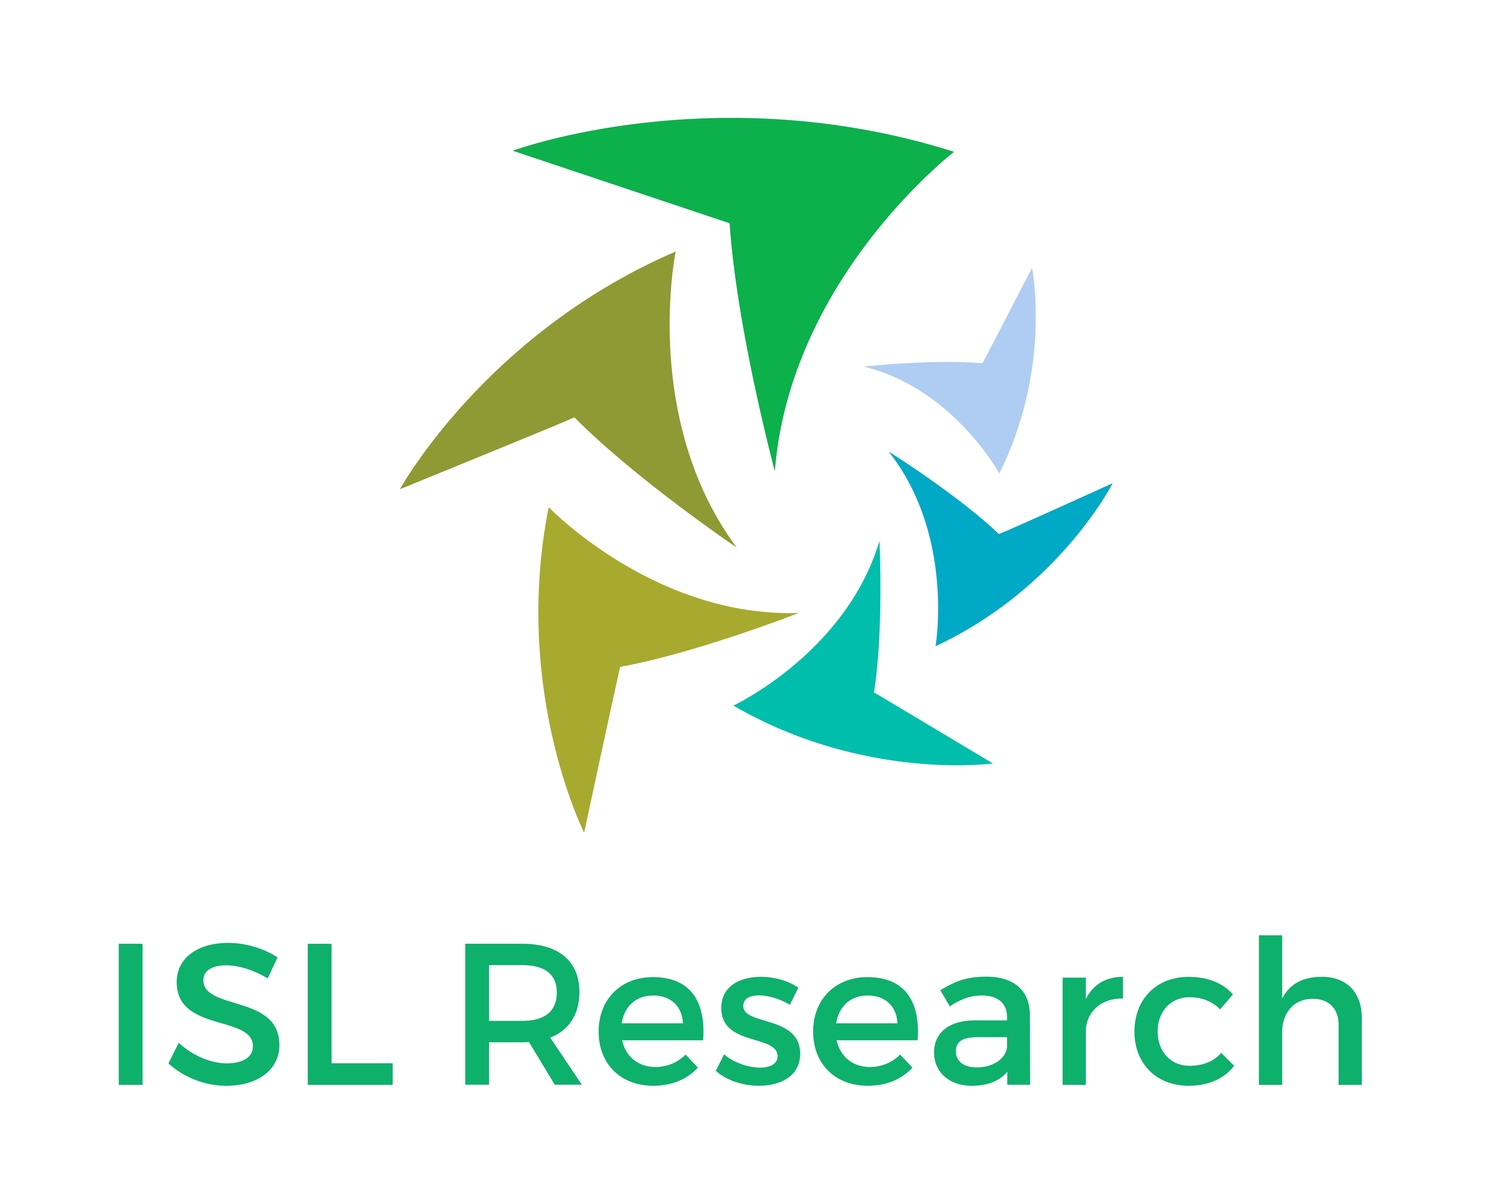 ISL Research Ltd